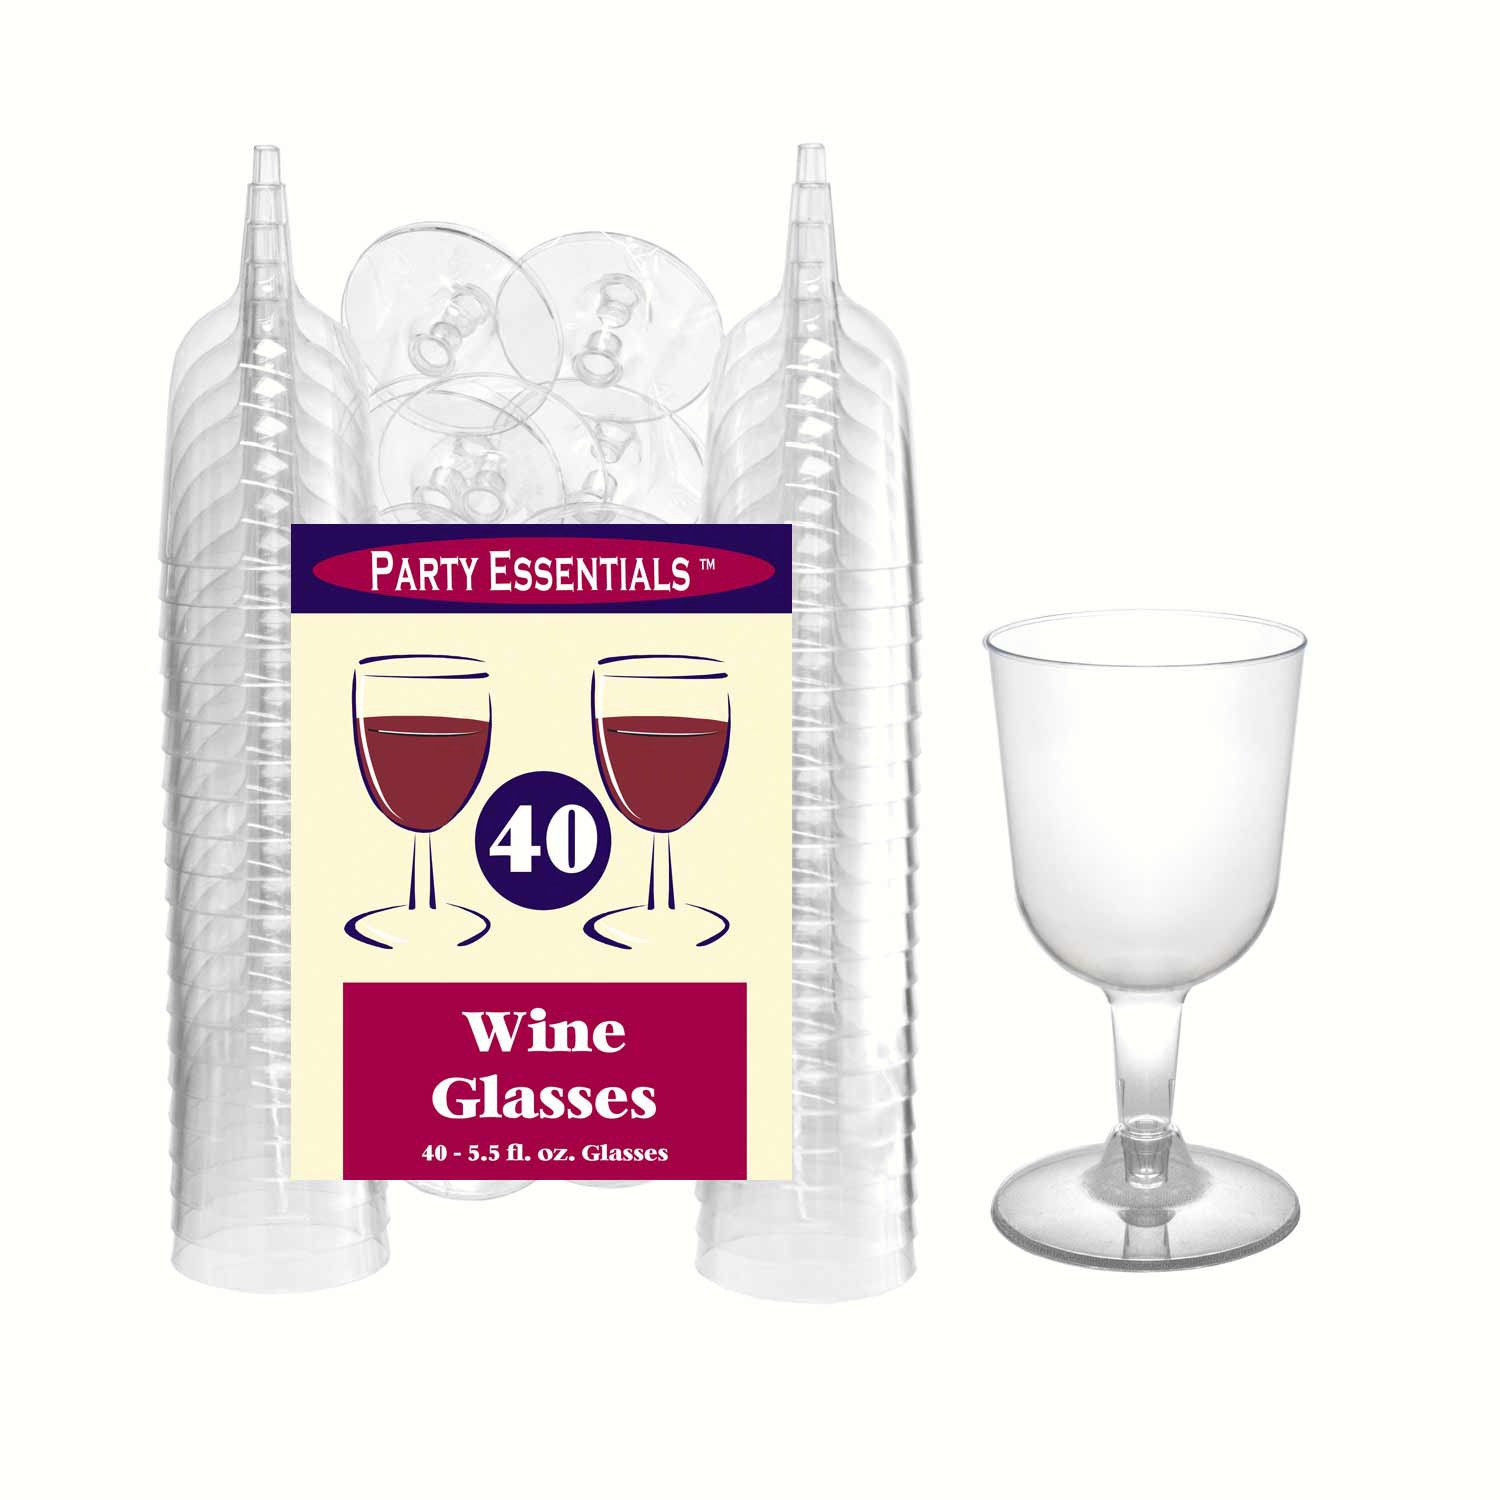 2 pc 5.5 oz Wine Glasses. Clear 40 ct